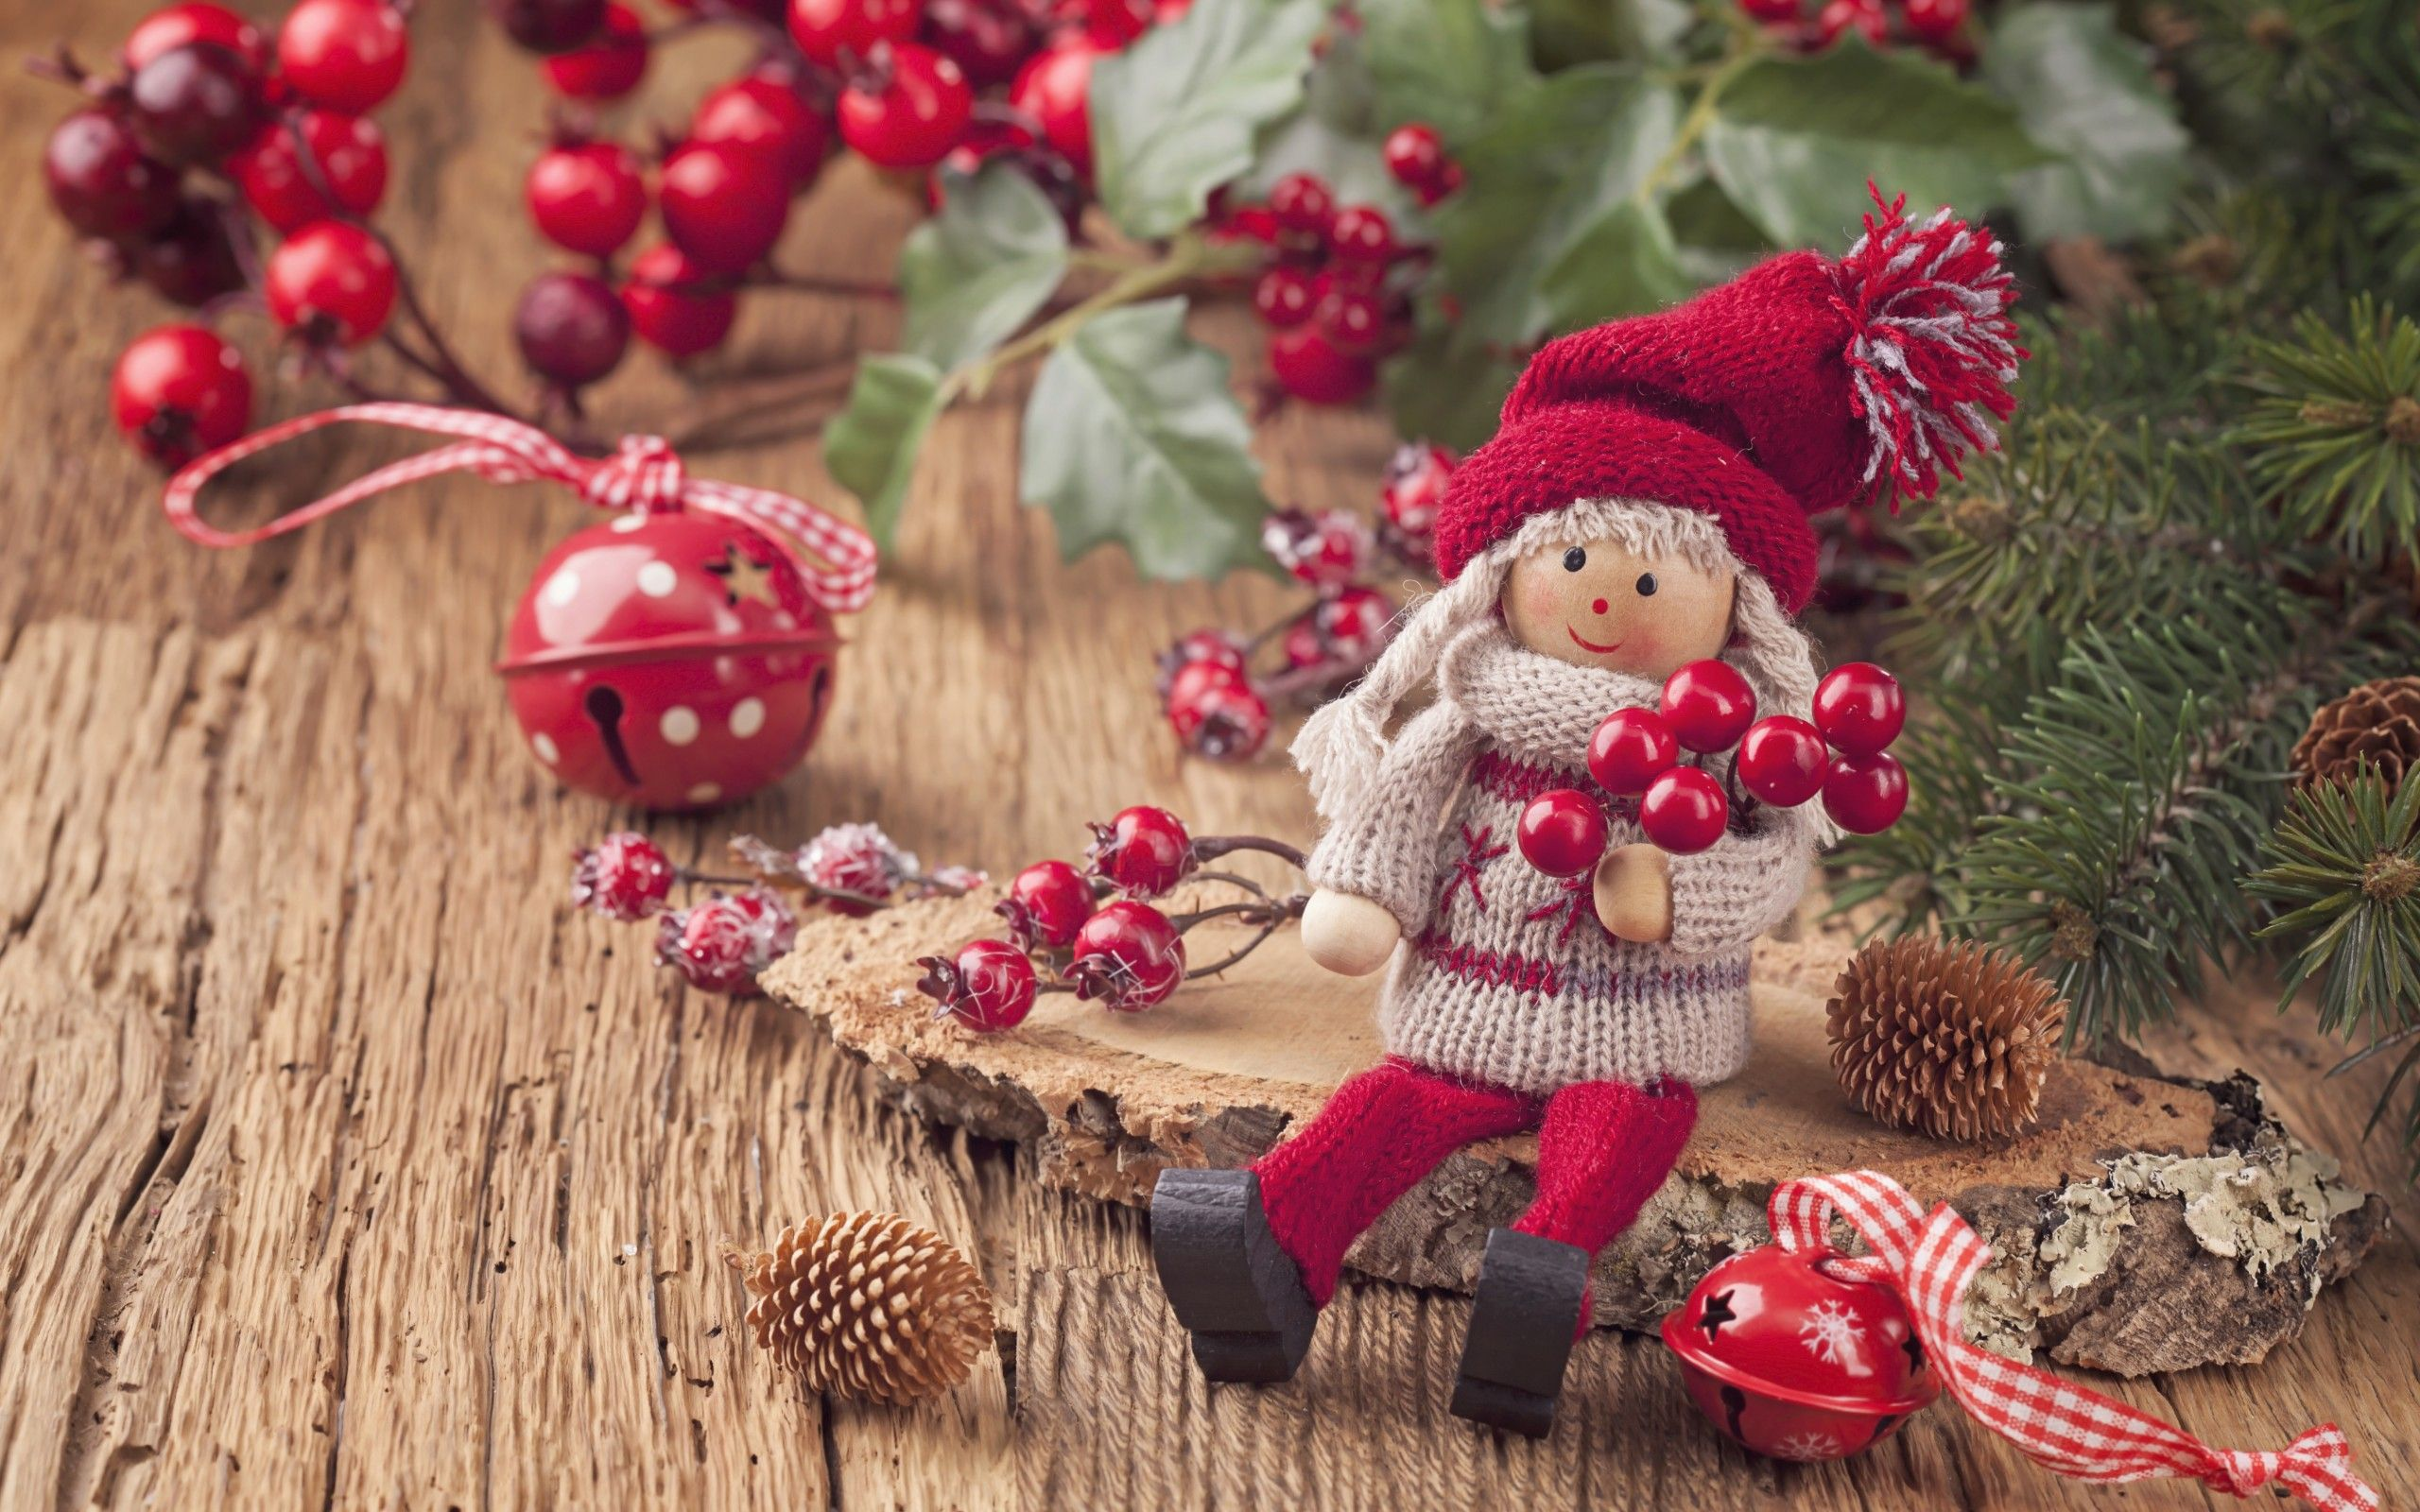 happy, holidays, marry, Christmas, new, year, decoration 01, wallpapers , Pc backgrounds, free photos - HD wallpaper desktop backgrounds